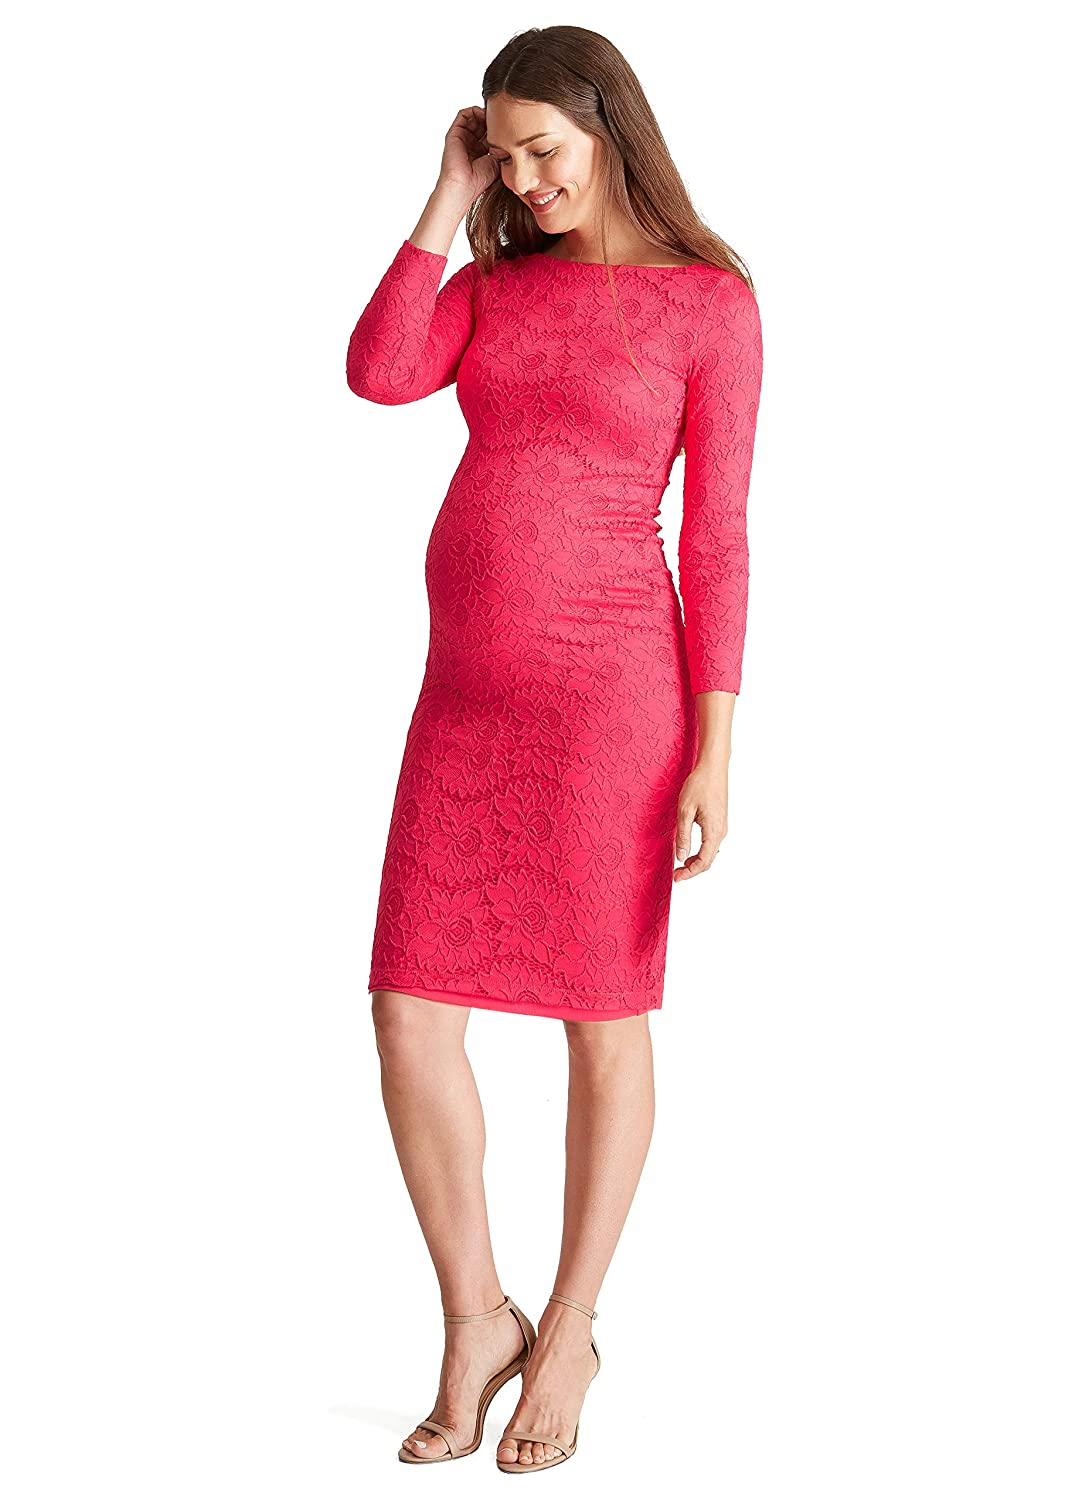 081d058df57 Ingrid   Isabel Women s Maternity Boatneck Lace Dress at Amazon Women s  Clothing store